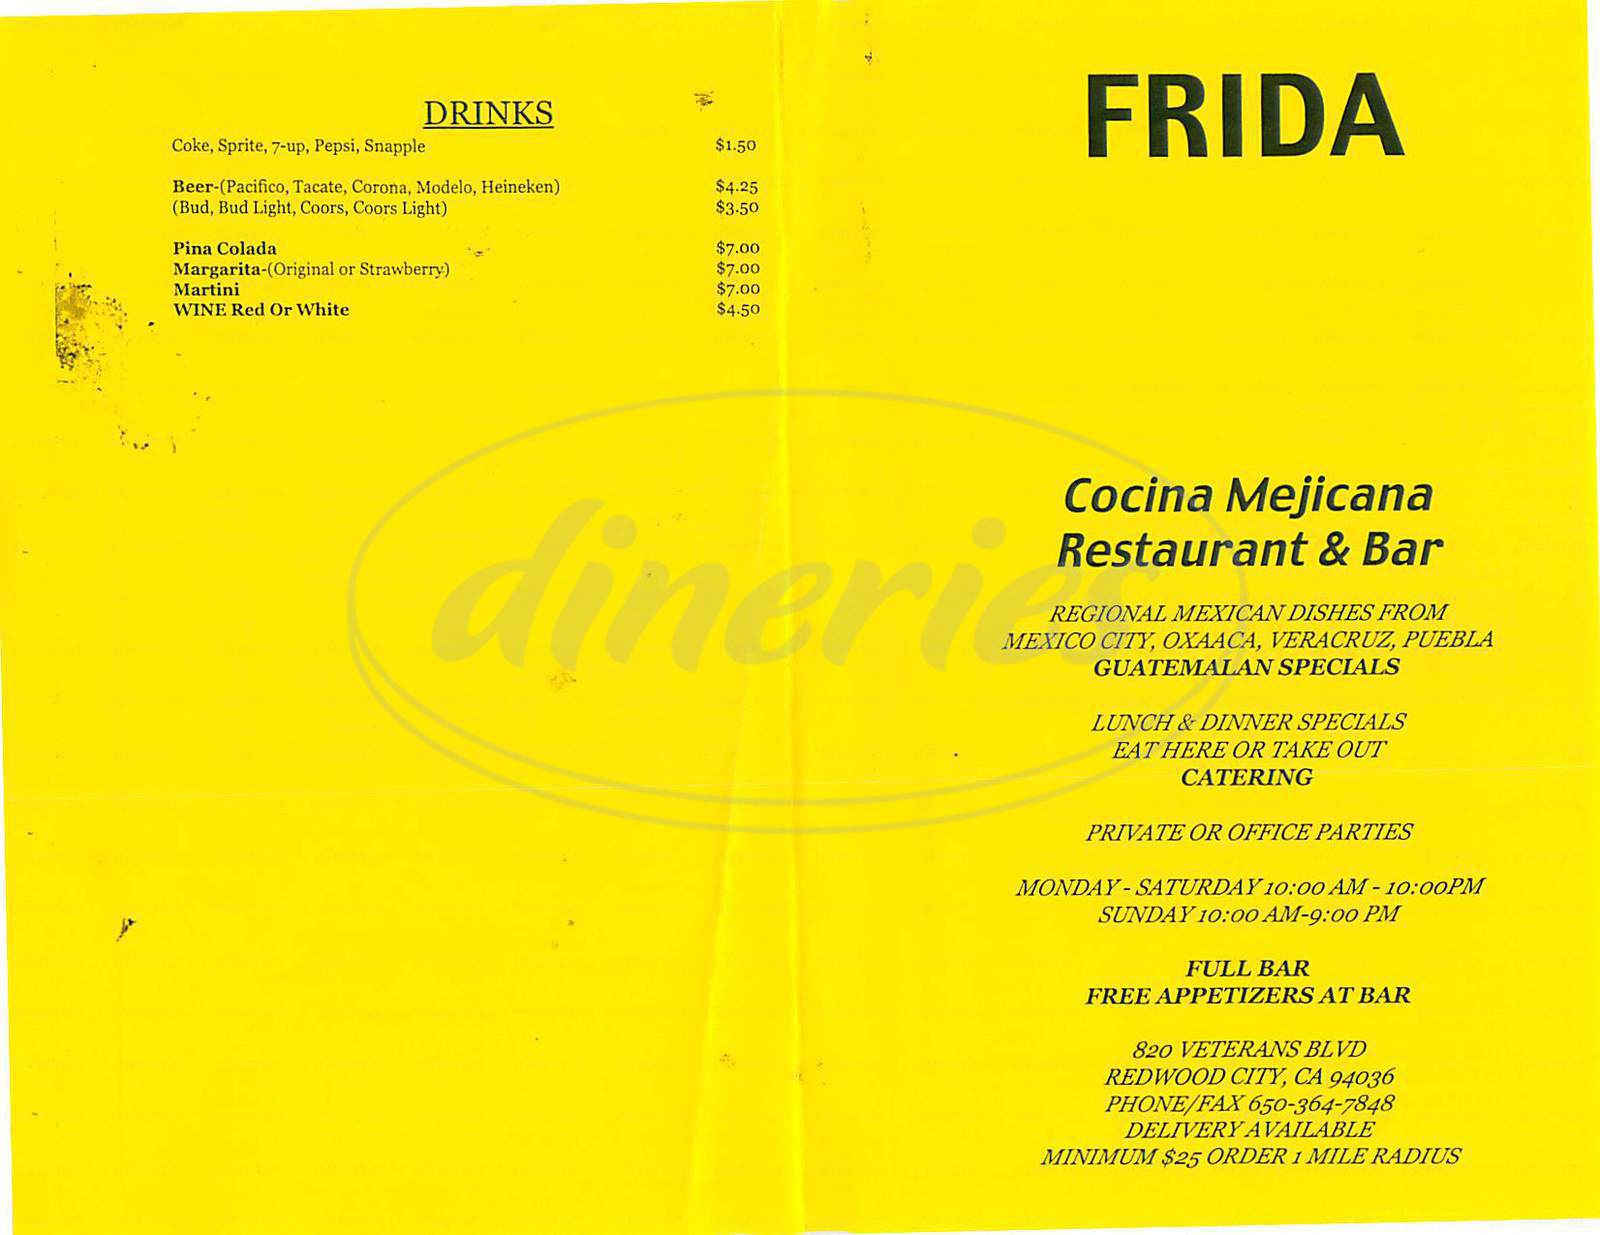 menu for Frida Cocina Mejicana